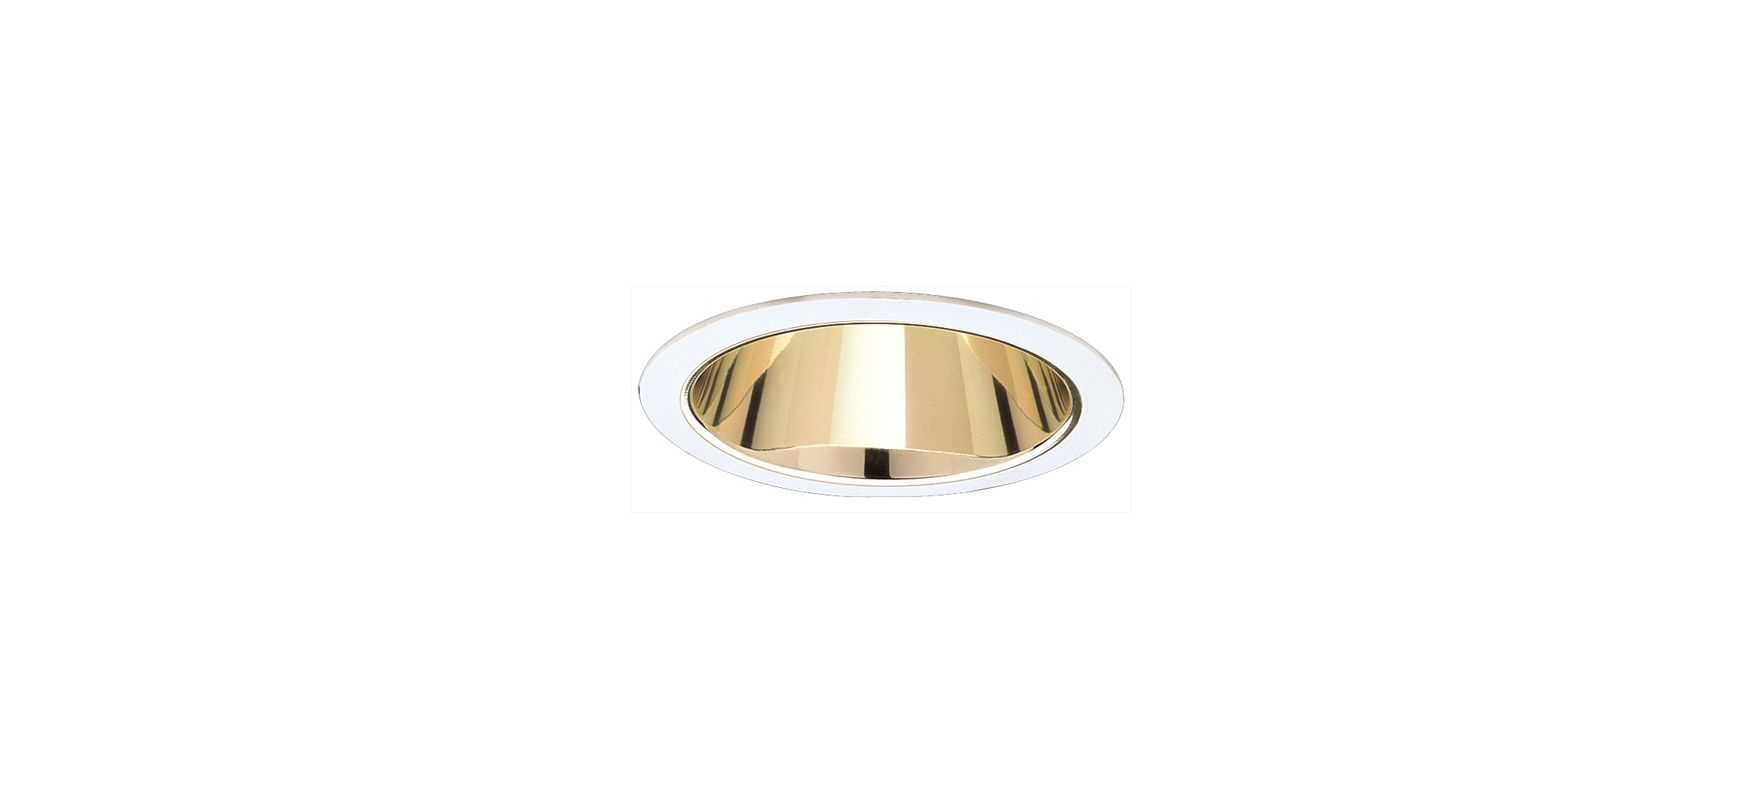 "Elco EL816 8"" Reflector Trim Gold / White Recessed Lights Reflector"